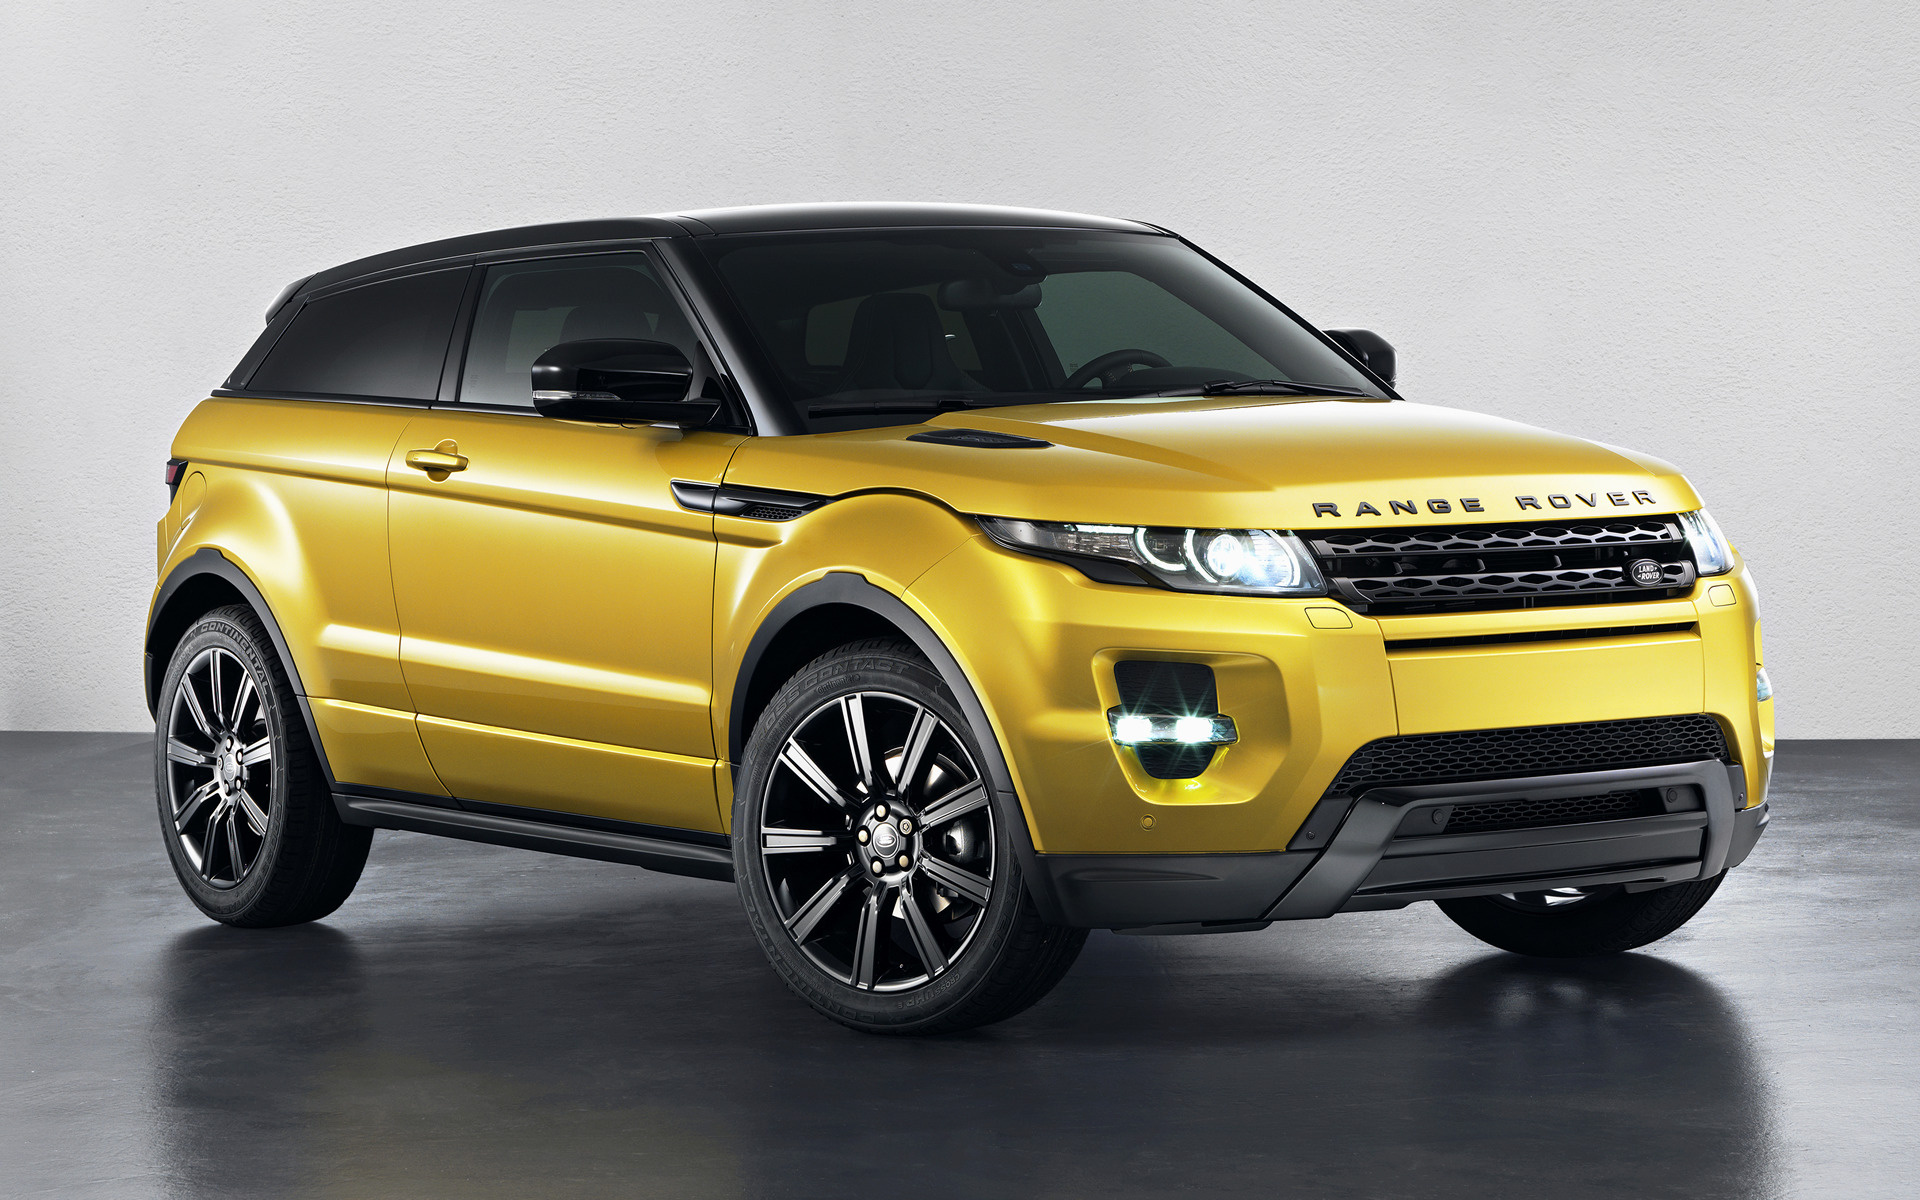 range rover evoque coupe sicilian yellow 2013 wallpapers. Black Bedroom Furniture Sets. Home Design Ideas